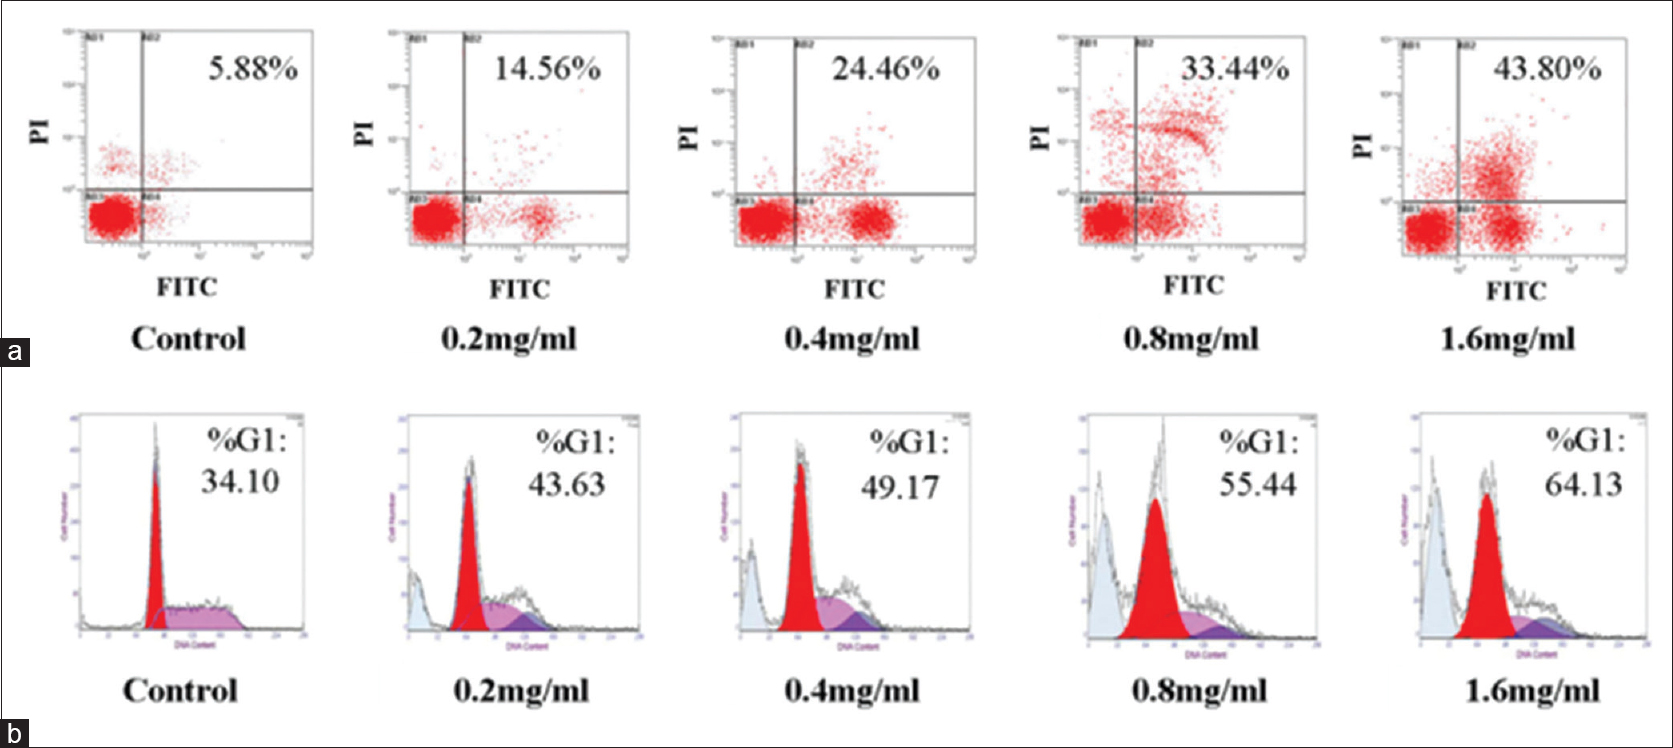 Figure 2: The effects of EE treatment on apoptosis and cell cycle distribution of LCC cells. (a) The apoptosis analyses in LCC cells treated with EE at the indicated concentrations for 24 h. (b) The proportions of LCC cells in the G0/G1 phase treated with EE are presented. The group without EE treatment was a control. LCC: Large cell carcinoma; EE: <i>Euphorbiaceae</i> extract